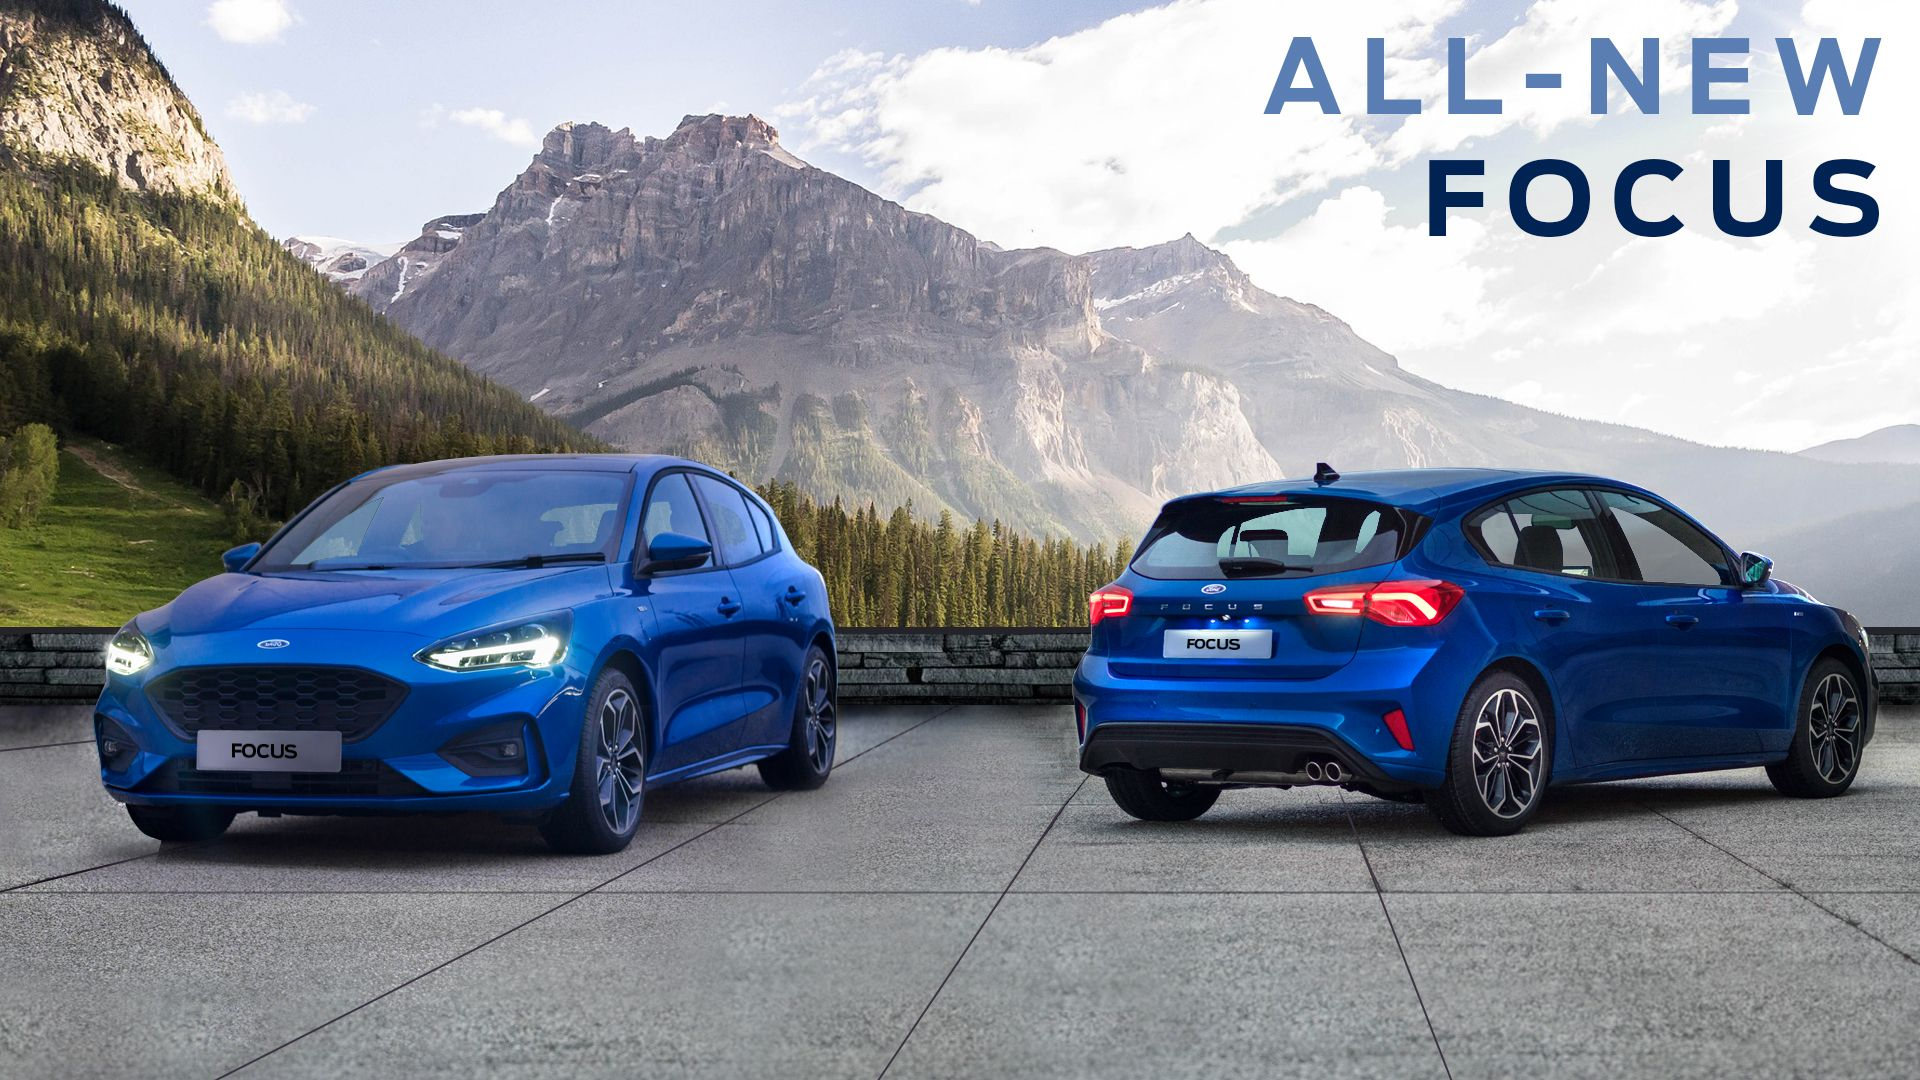 All New Ford Focus St Line Coming Soon To Foray Motor Group New